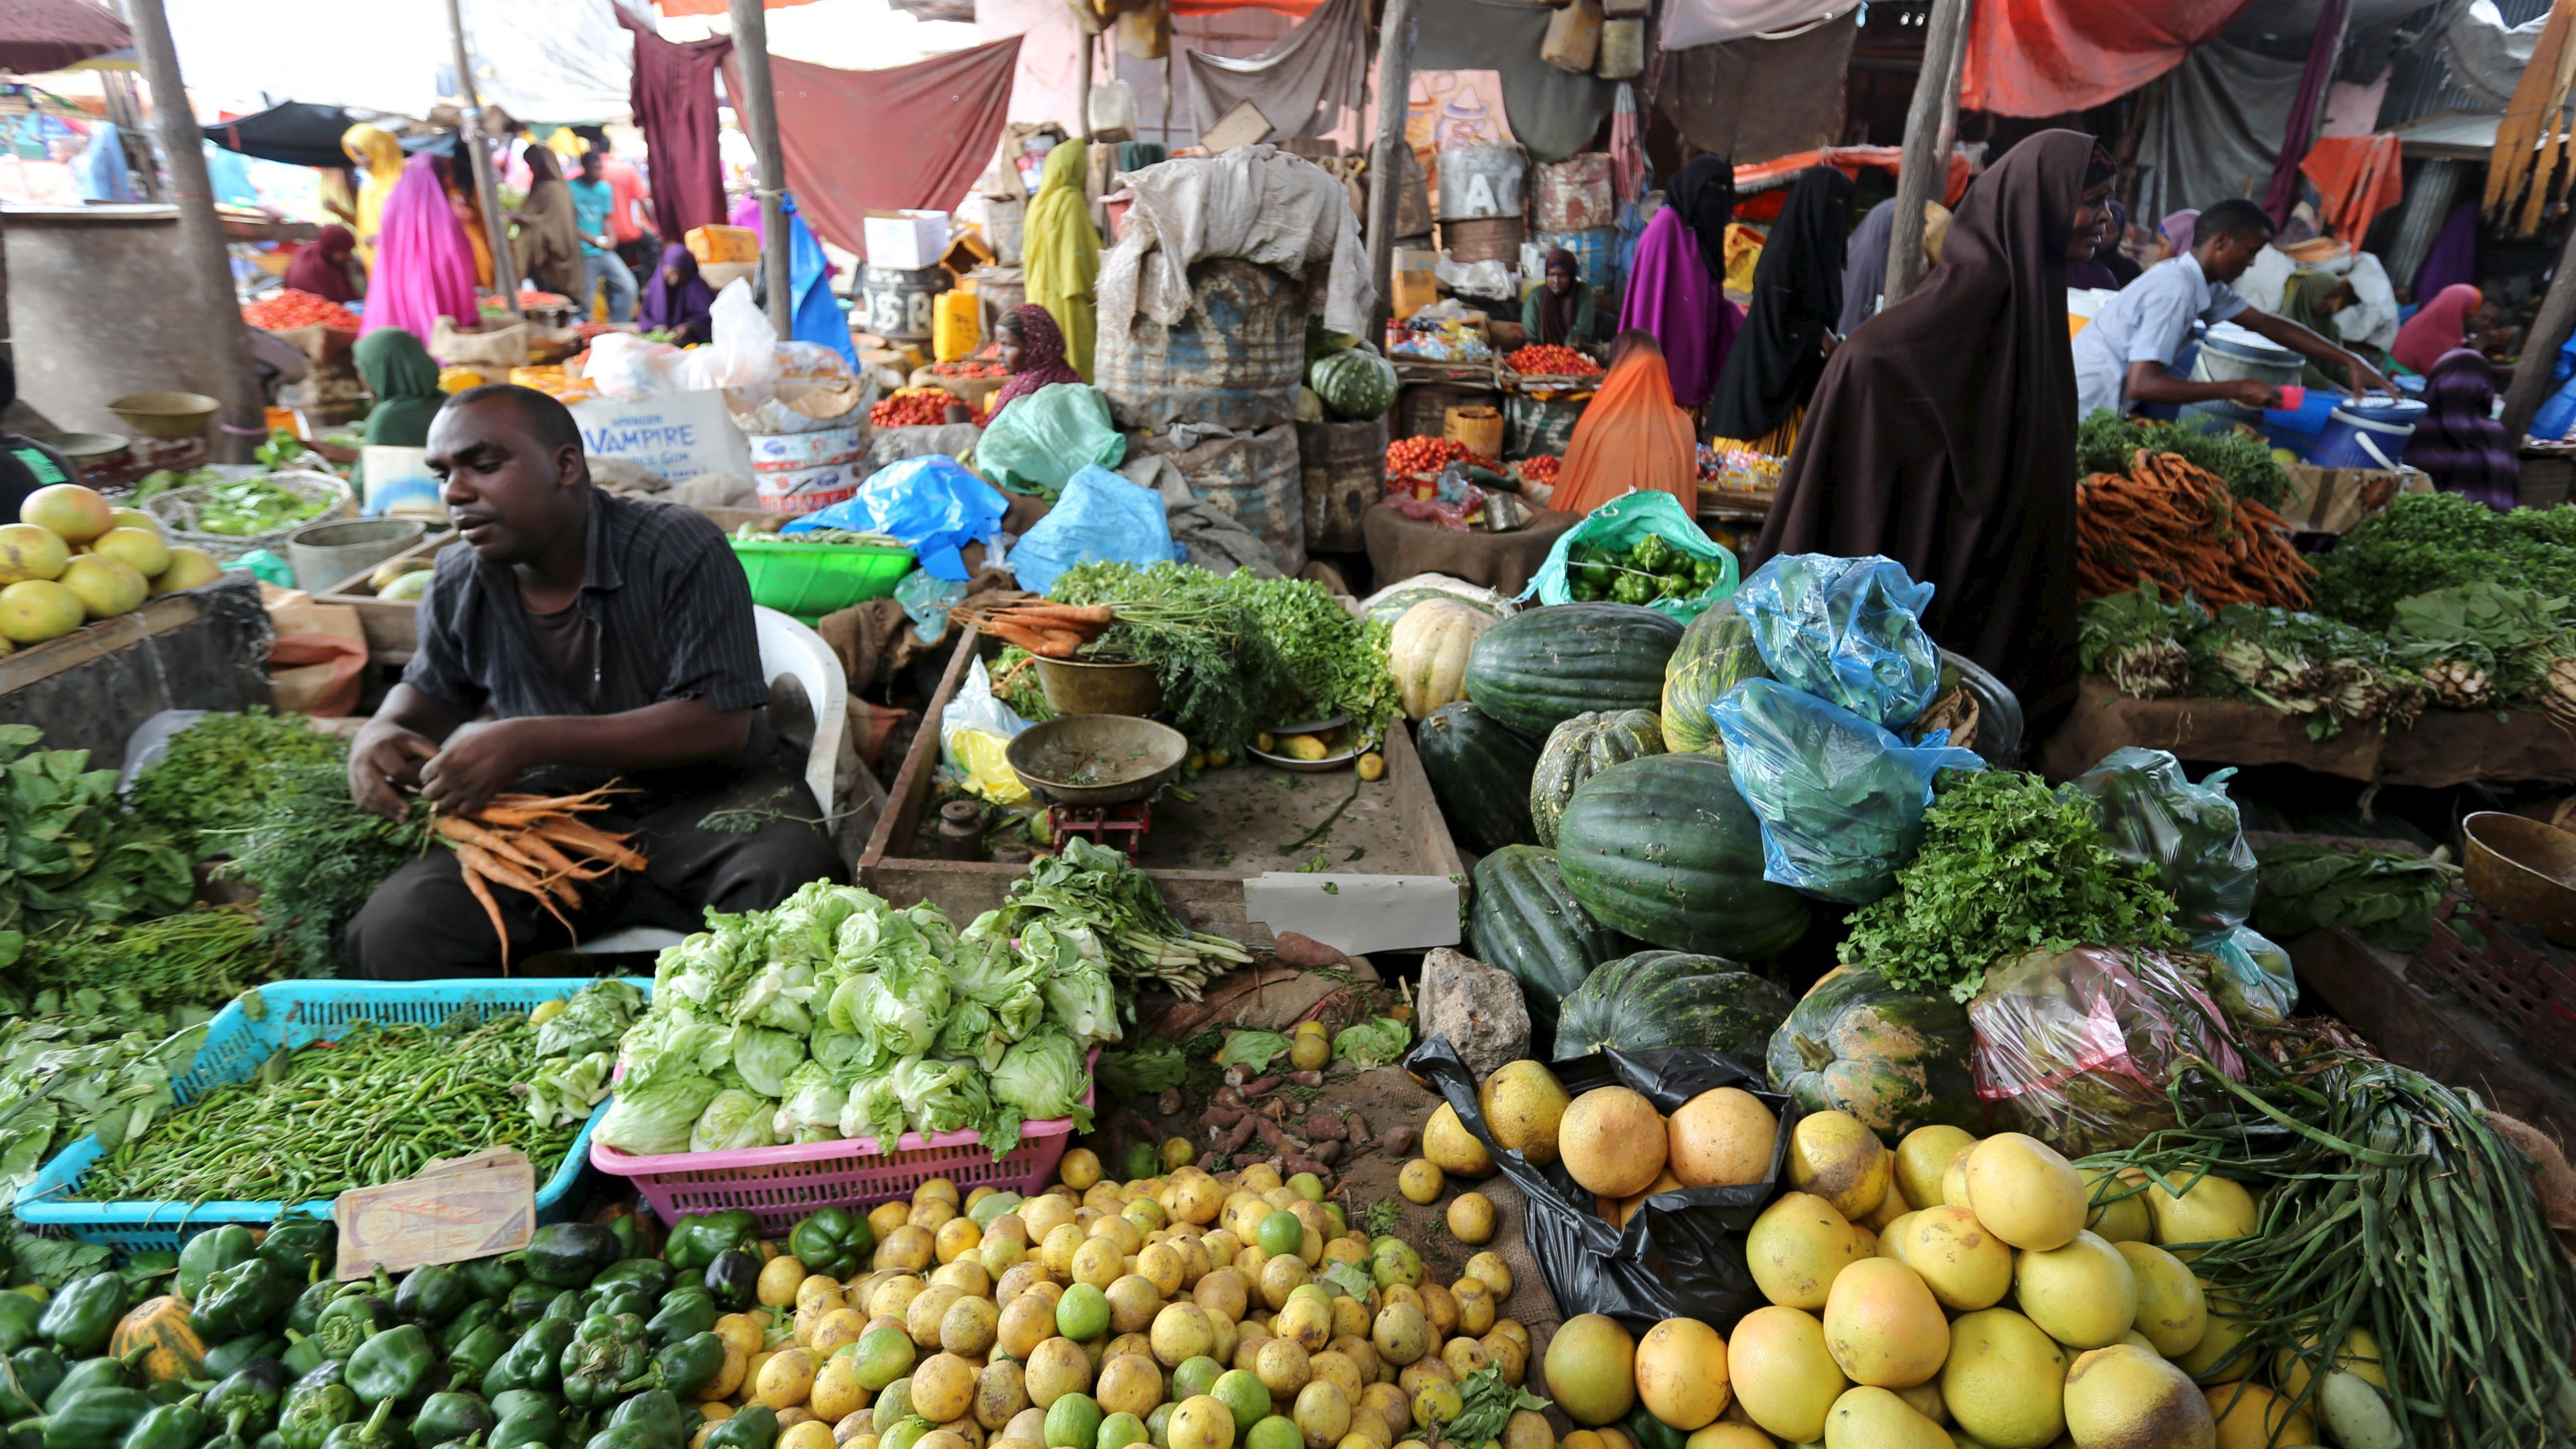 Somali traders sell vegetables at a market as Muslims prepare for the fasting month of Ramadan, the holiest month in the Islamic calendar in Somalia's capital Mogadishu, June 17, 2015. REUTERS/Feisal Omar  - RTX1GXKQ